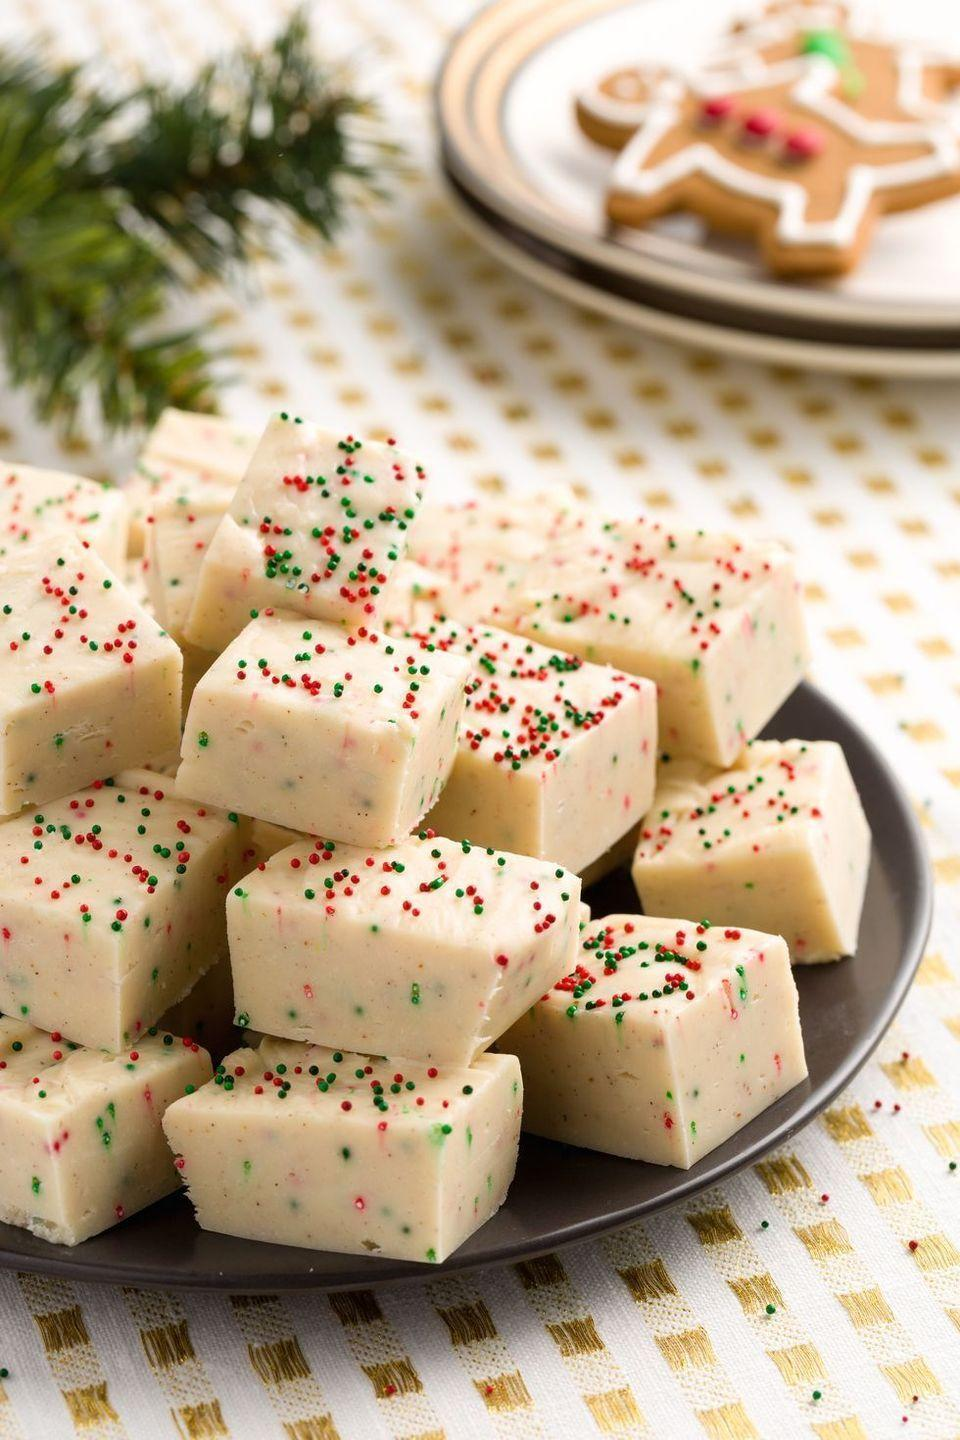 """<p>A homemade treat is always a good gift to give and an even better gift to receive. Wrap up your mom's favorite dessert with a big bow, and watch her eyes light up when she opens it. </p><p><strong><em>Get the tutorial at <a href=""""https://www.delish.com/cooking/recipe-ideas/recipes/a45064/gingerbread-fudge-recipe/"""" rel=""""nofollow noopener"""" target=""""_blank"""" data-ylk=""""slk:Delish"""" class=""""link rapid-noclick-resp"""">Delish</a>.</em></strong></p>"""